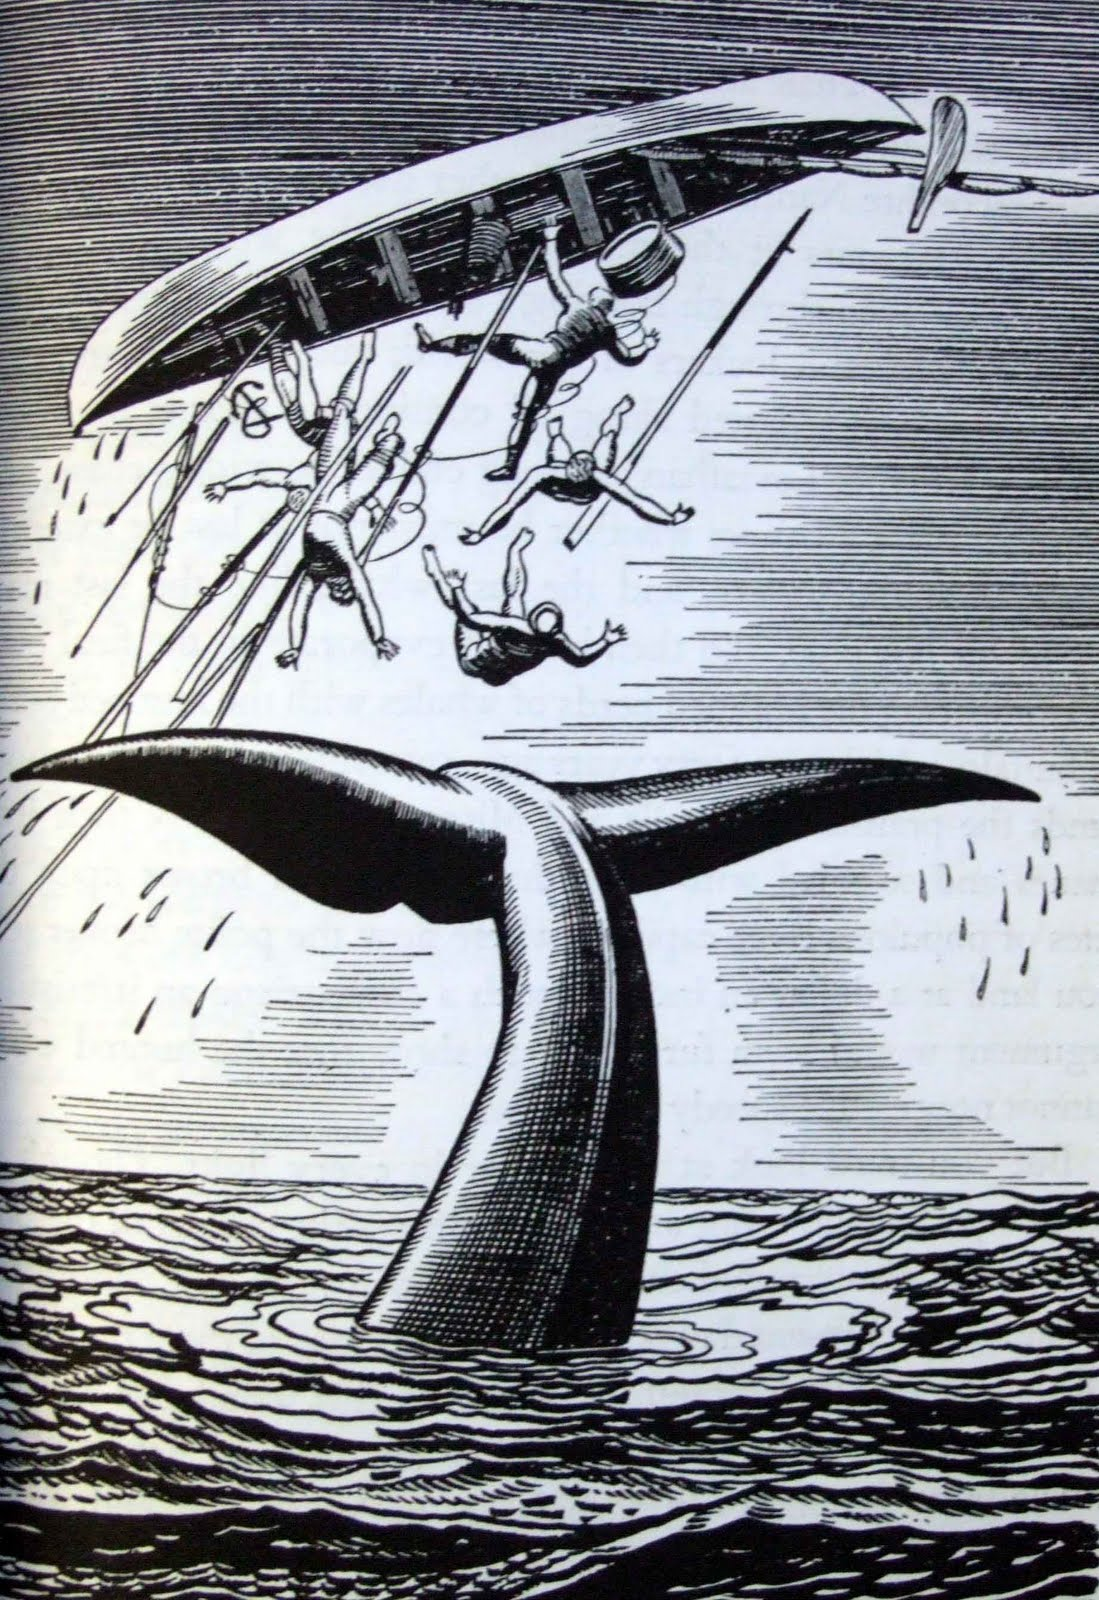 Rockwell Kent does Moby Dick